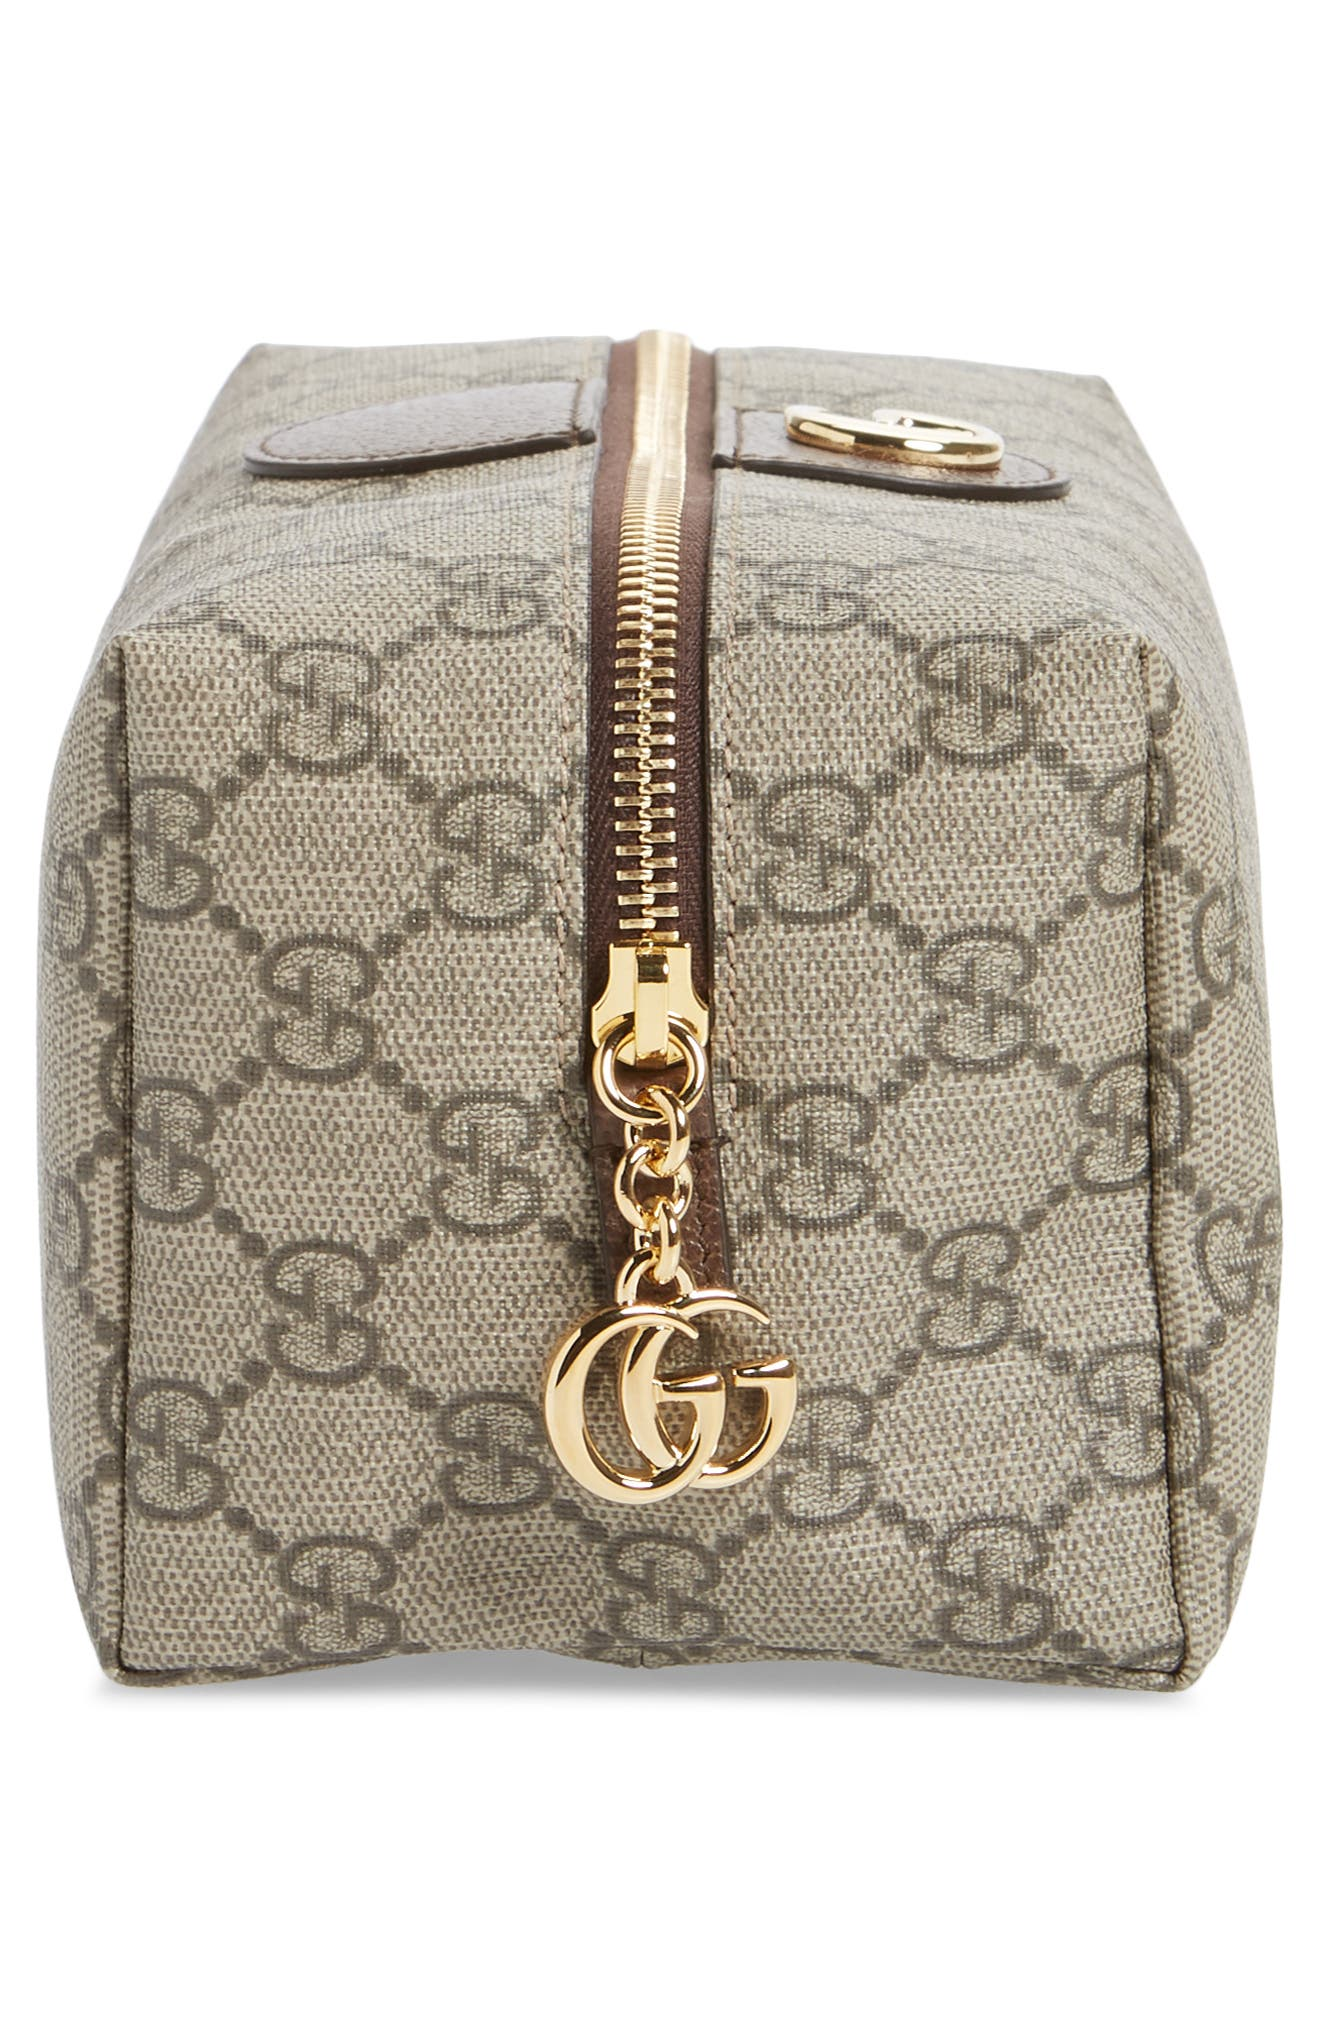 GUCCI, Medium Ophidia GG Supreme Canvas Cosmetics Case, Alternate thumbnail 4, color, BEIGE EBONY/ NEW ACERO